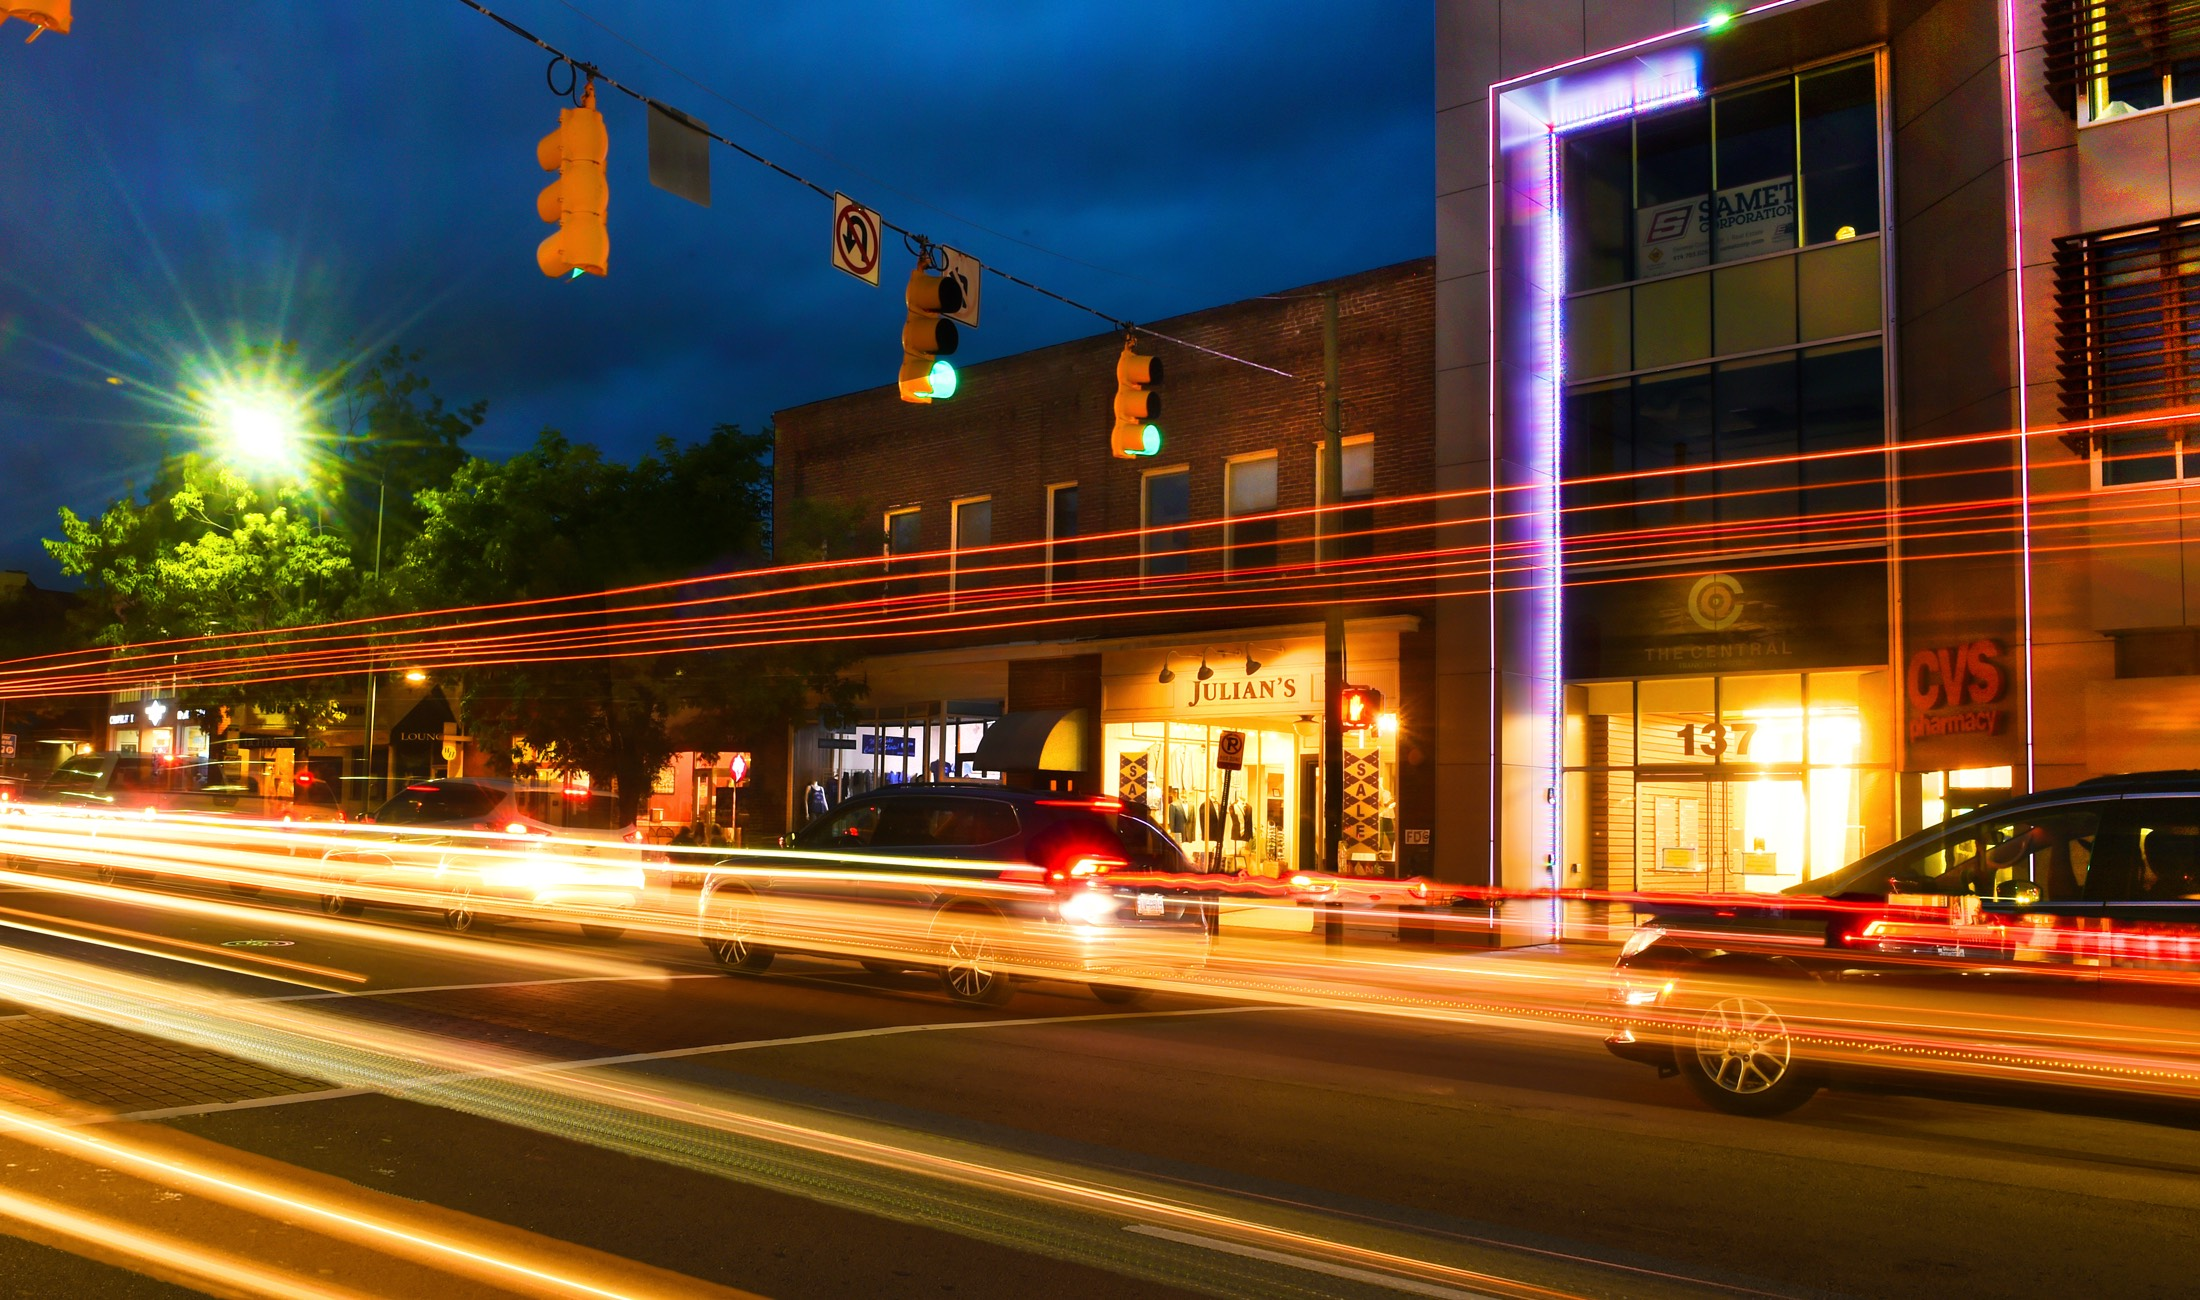 A long-exposure view of East Franklin Street in downtown Chapel Hill on a cloudy evening.